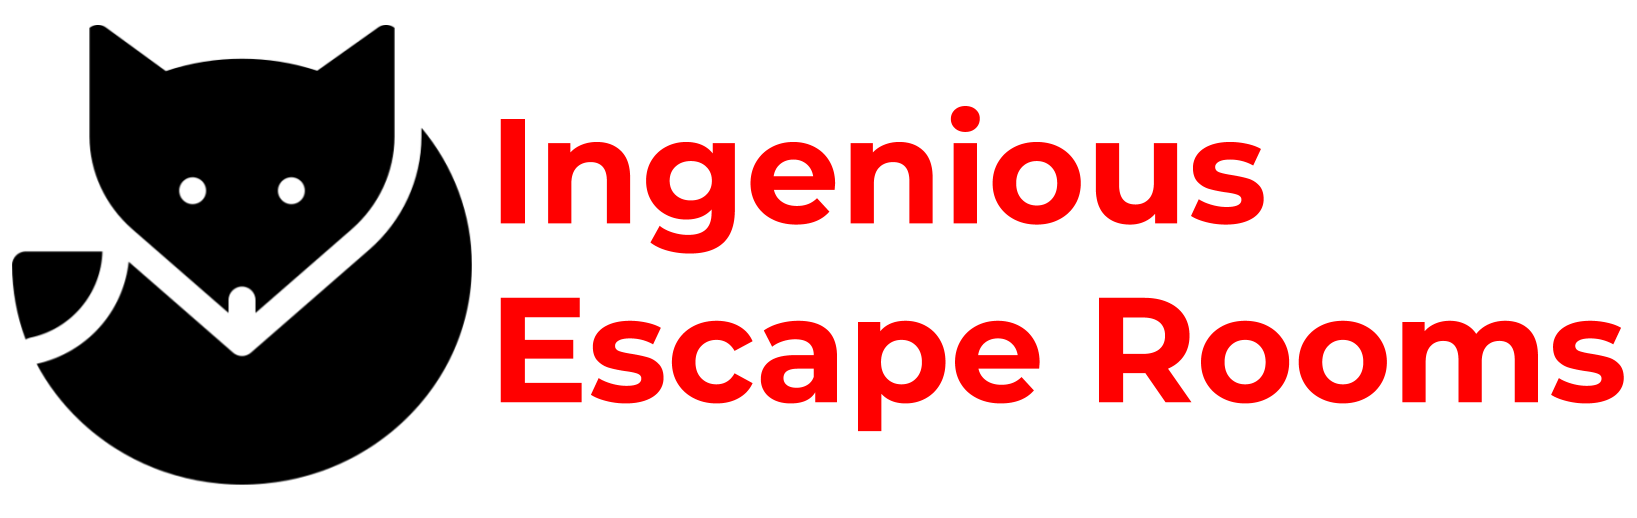 Ingenious Escape Rooms |   IMG-0982